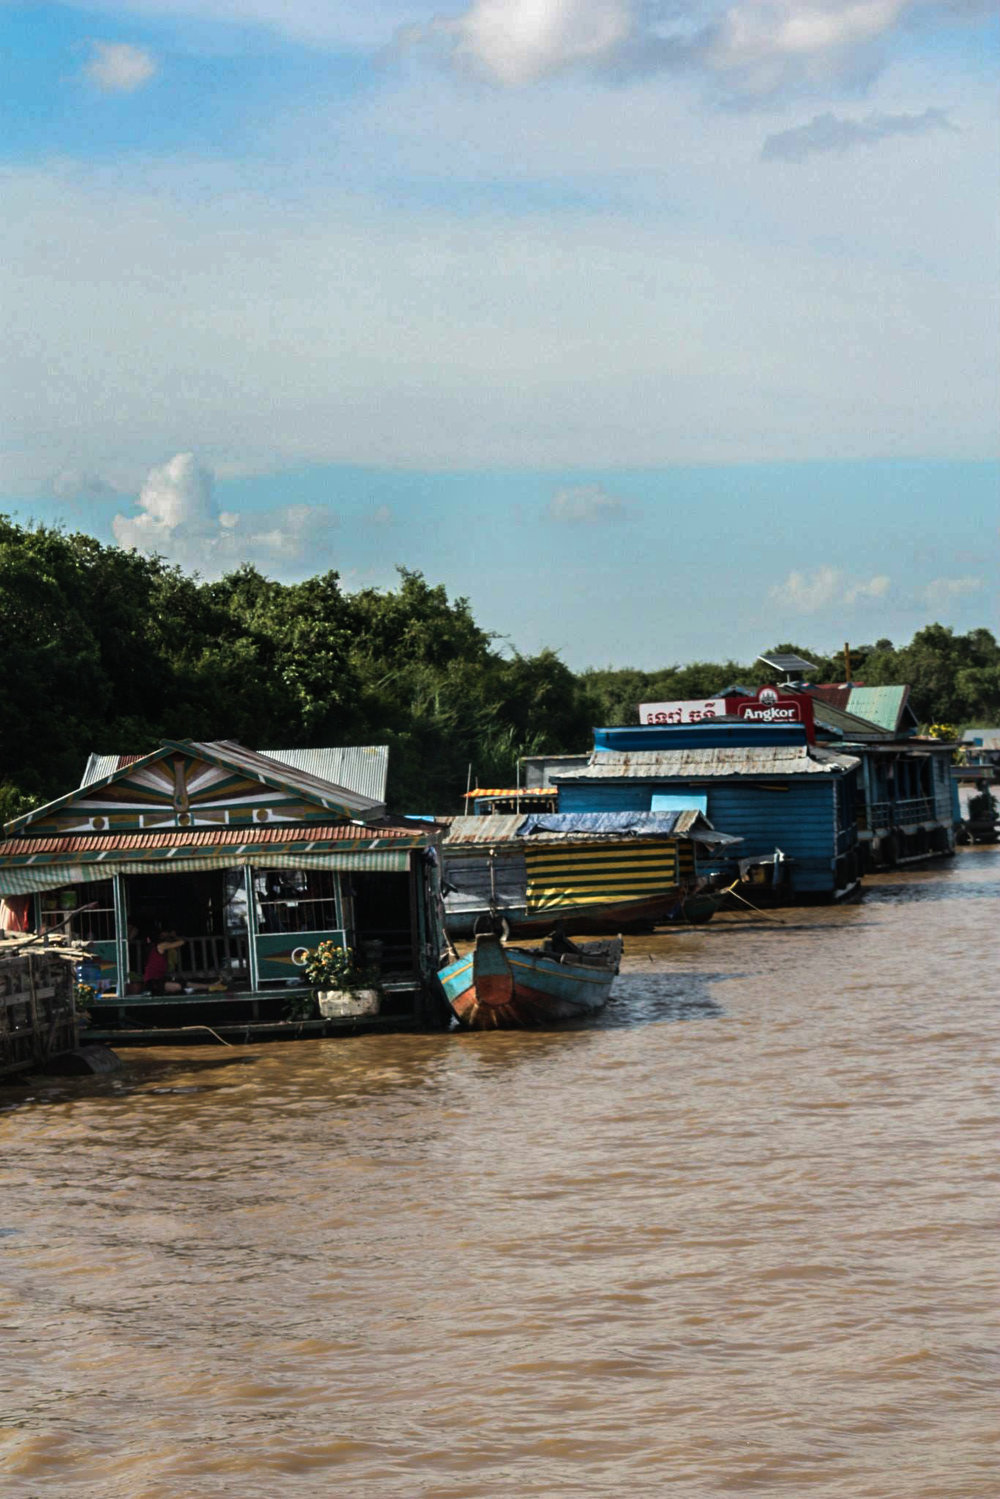 Floating village located in one of the northern provinces outside of Siem Reap.